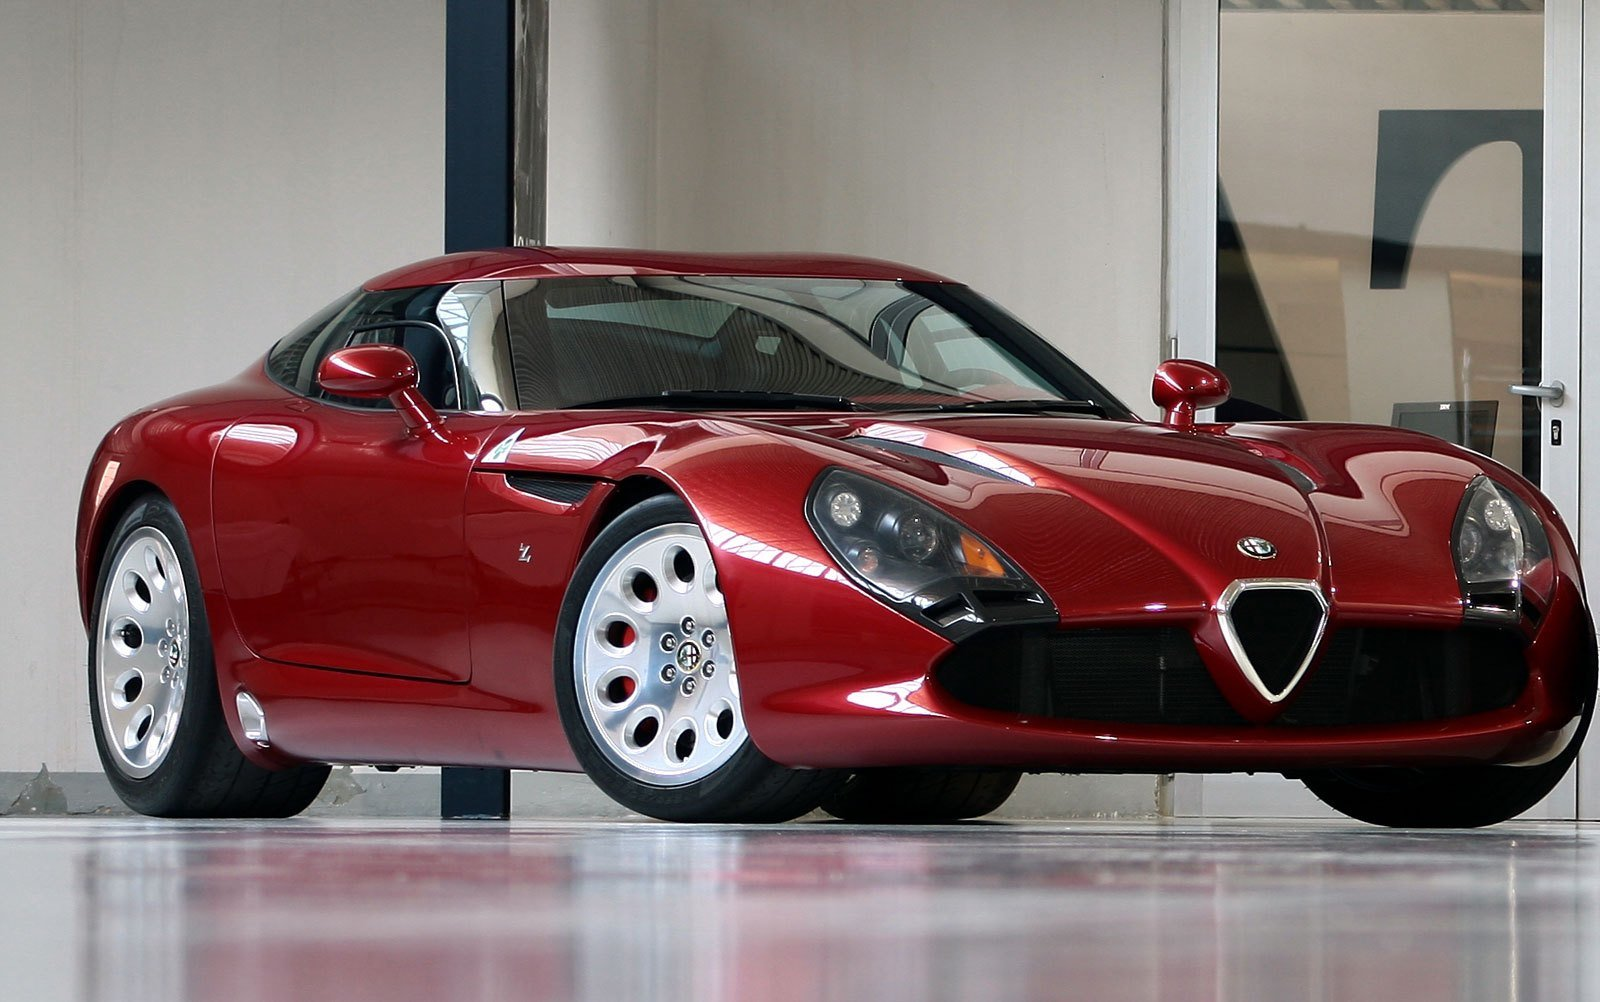 New Zagato Tz3 Stradale The First American Alfa Romeo On This Month